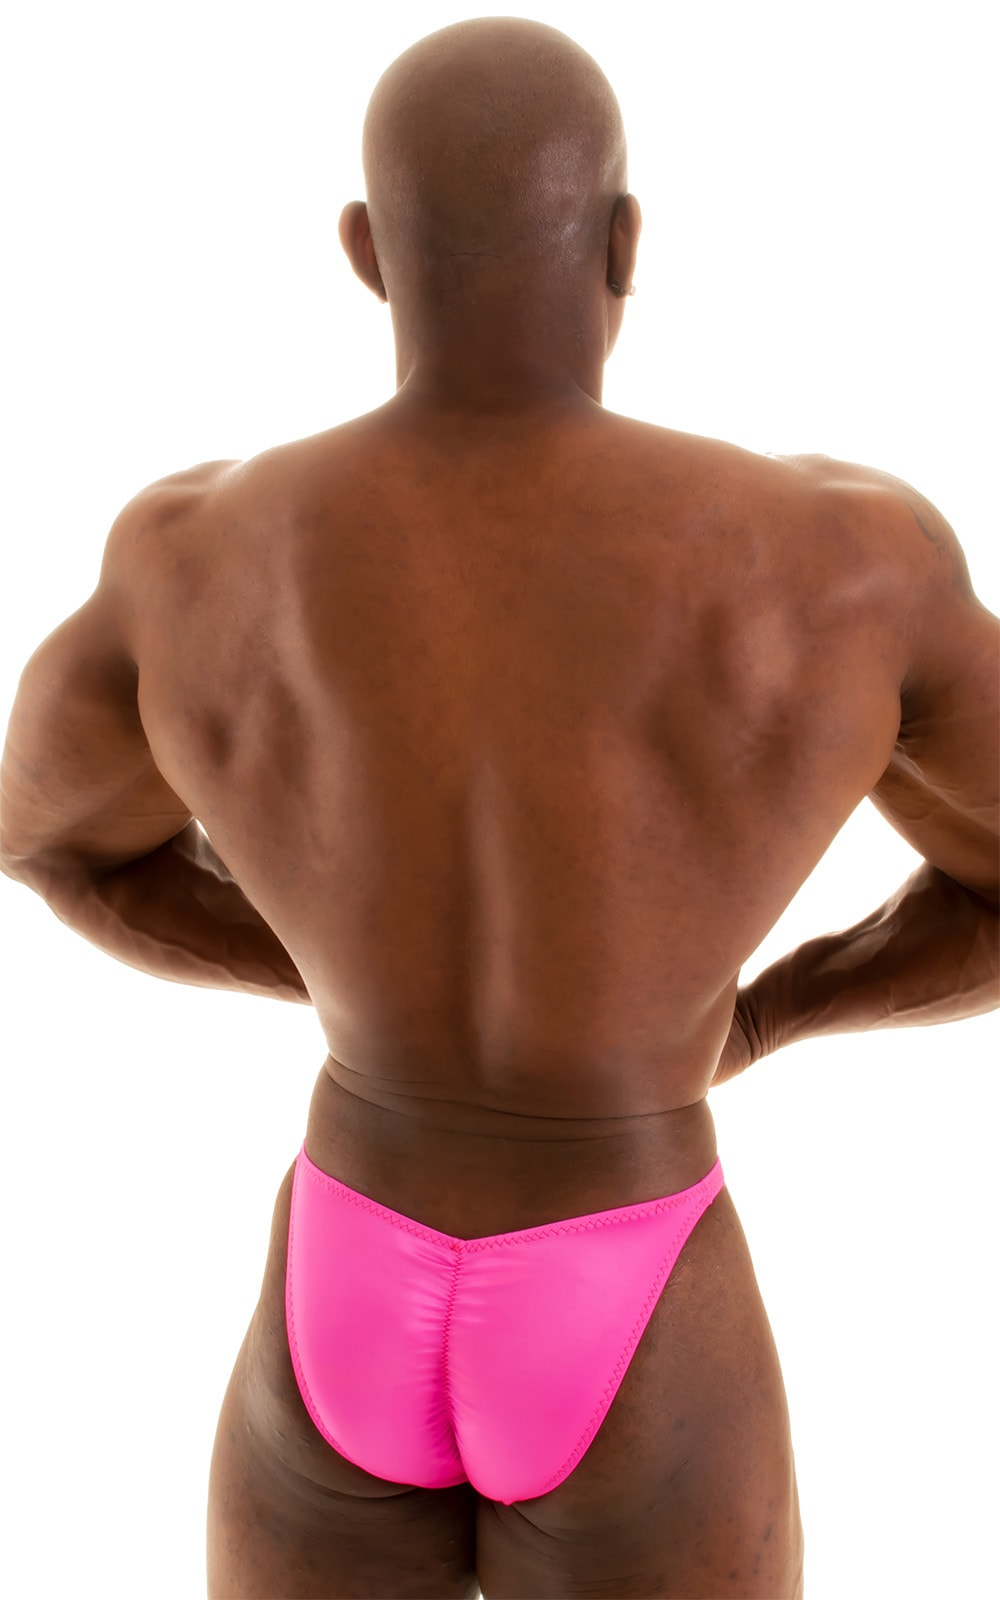 Fitted Pouch - Puckered Back - Posing Suit in Wet Look Hot Pink 4